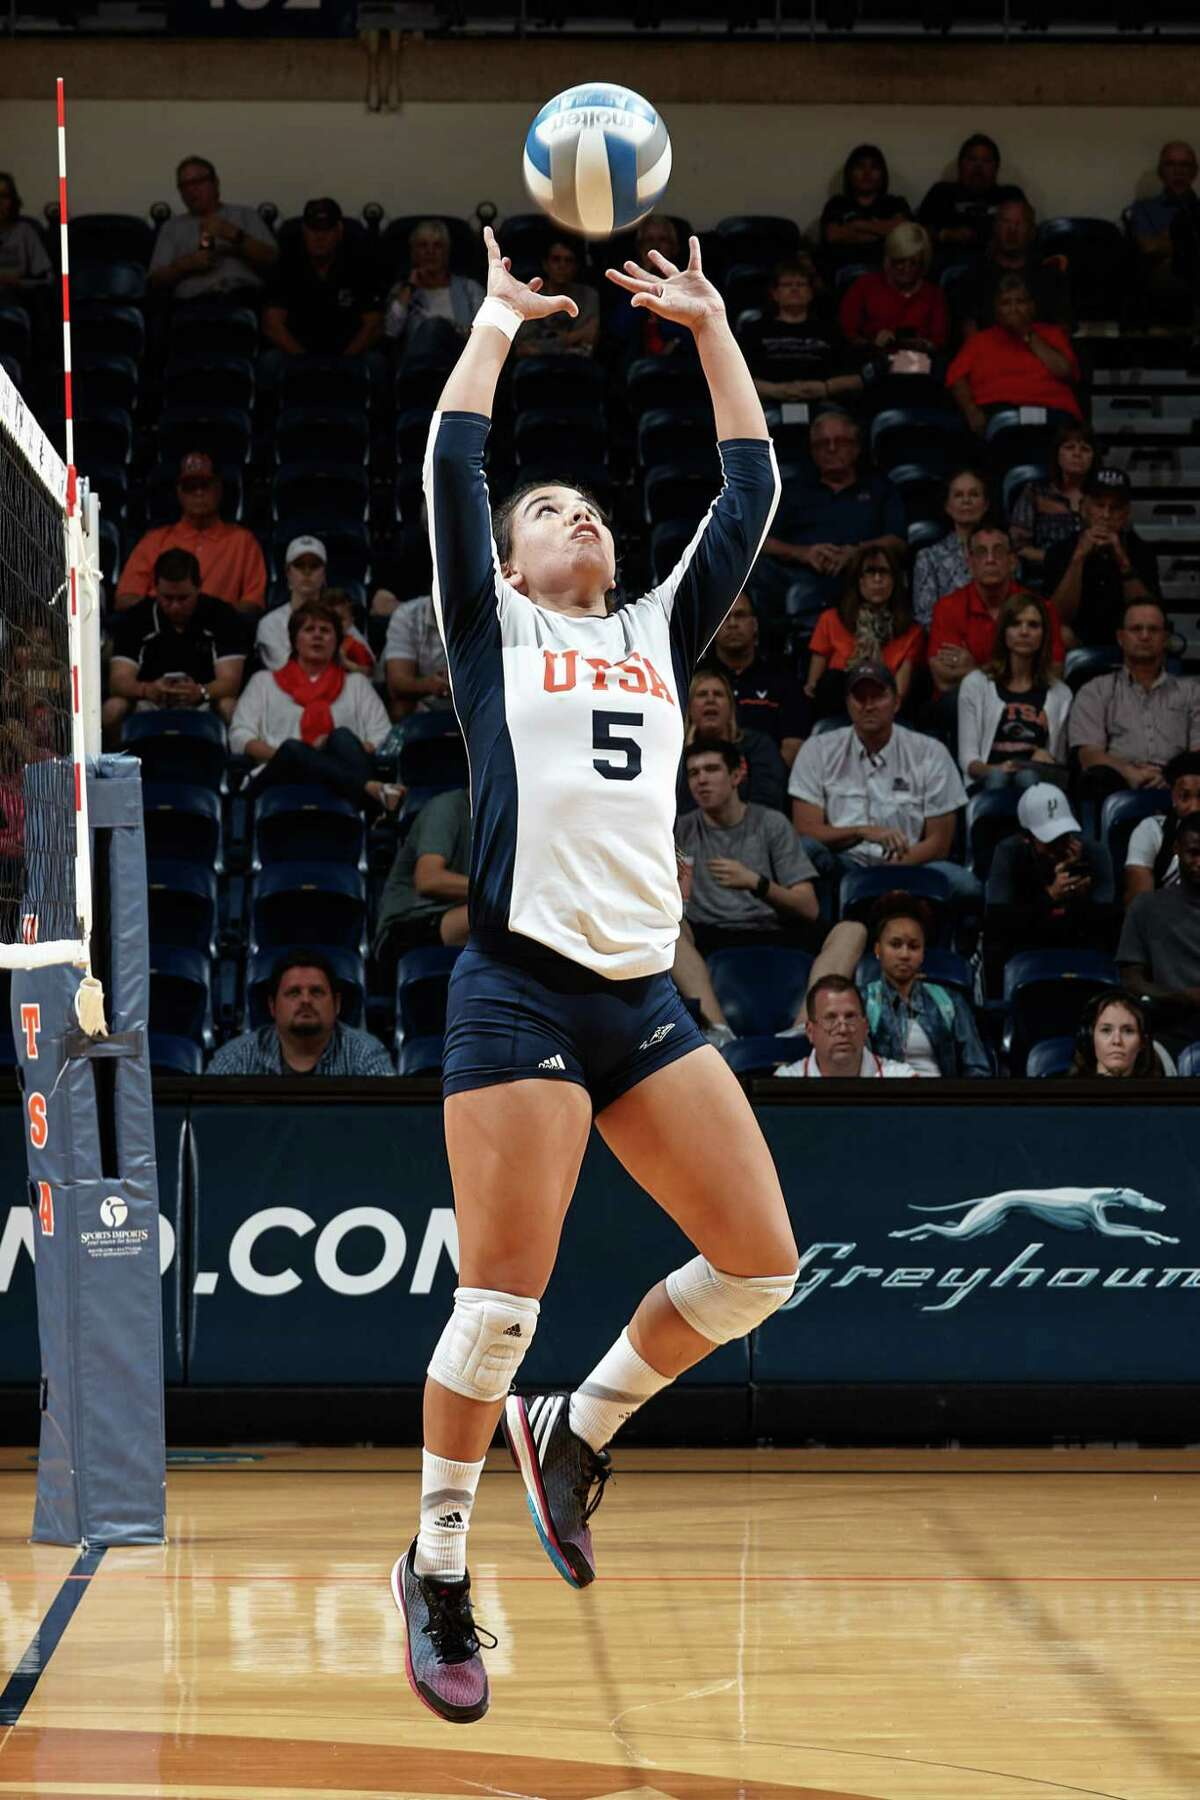 UTSA freshman setter Amanda Gonzales, a New Braunfels product, will be a major factor for the Roadrunners in the 2015 Conference-USA tournament. SAN ANTONIO, TX - OCTOBER 21, 2015: The University of North Carolina at Charlotte 49ers fall to the University of Texas at San Antonio Roadrunners 3-0 (25-19, 25-19, 25-19) at the UTSA Convocation Center. (Photo by Jeff Huehn)